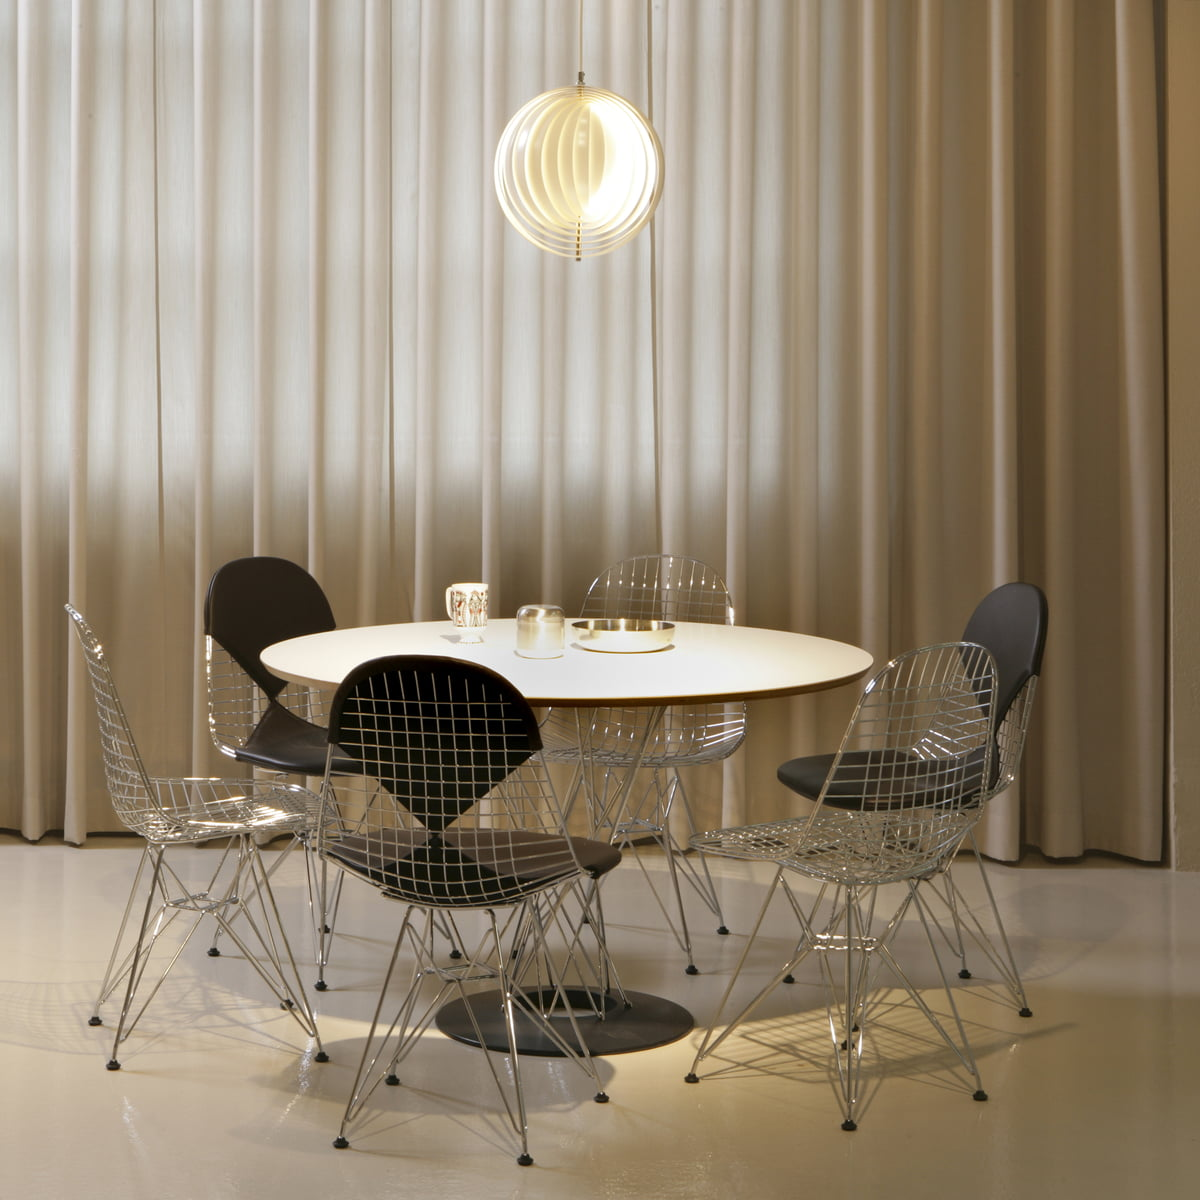 Vitra Dining Table By Isamu Noguchi Ø 121 Cm White Chrome